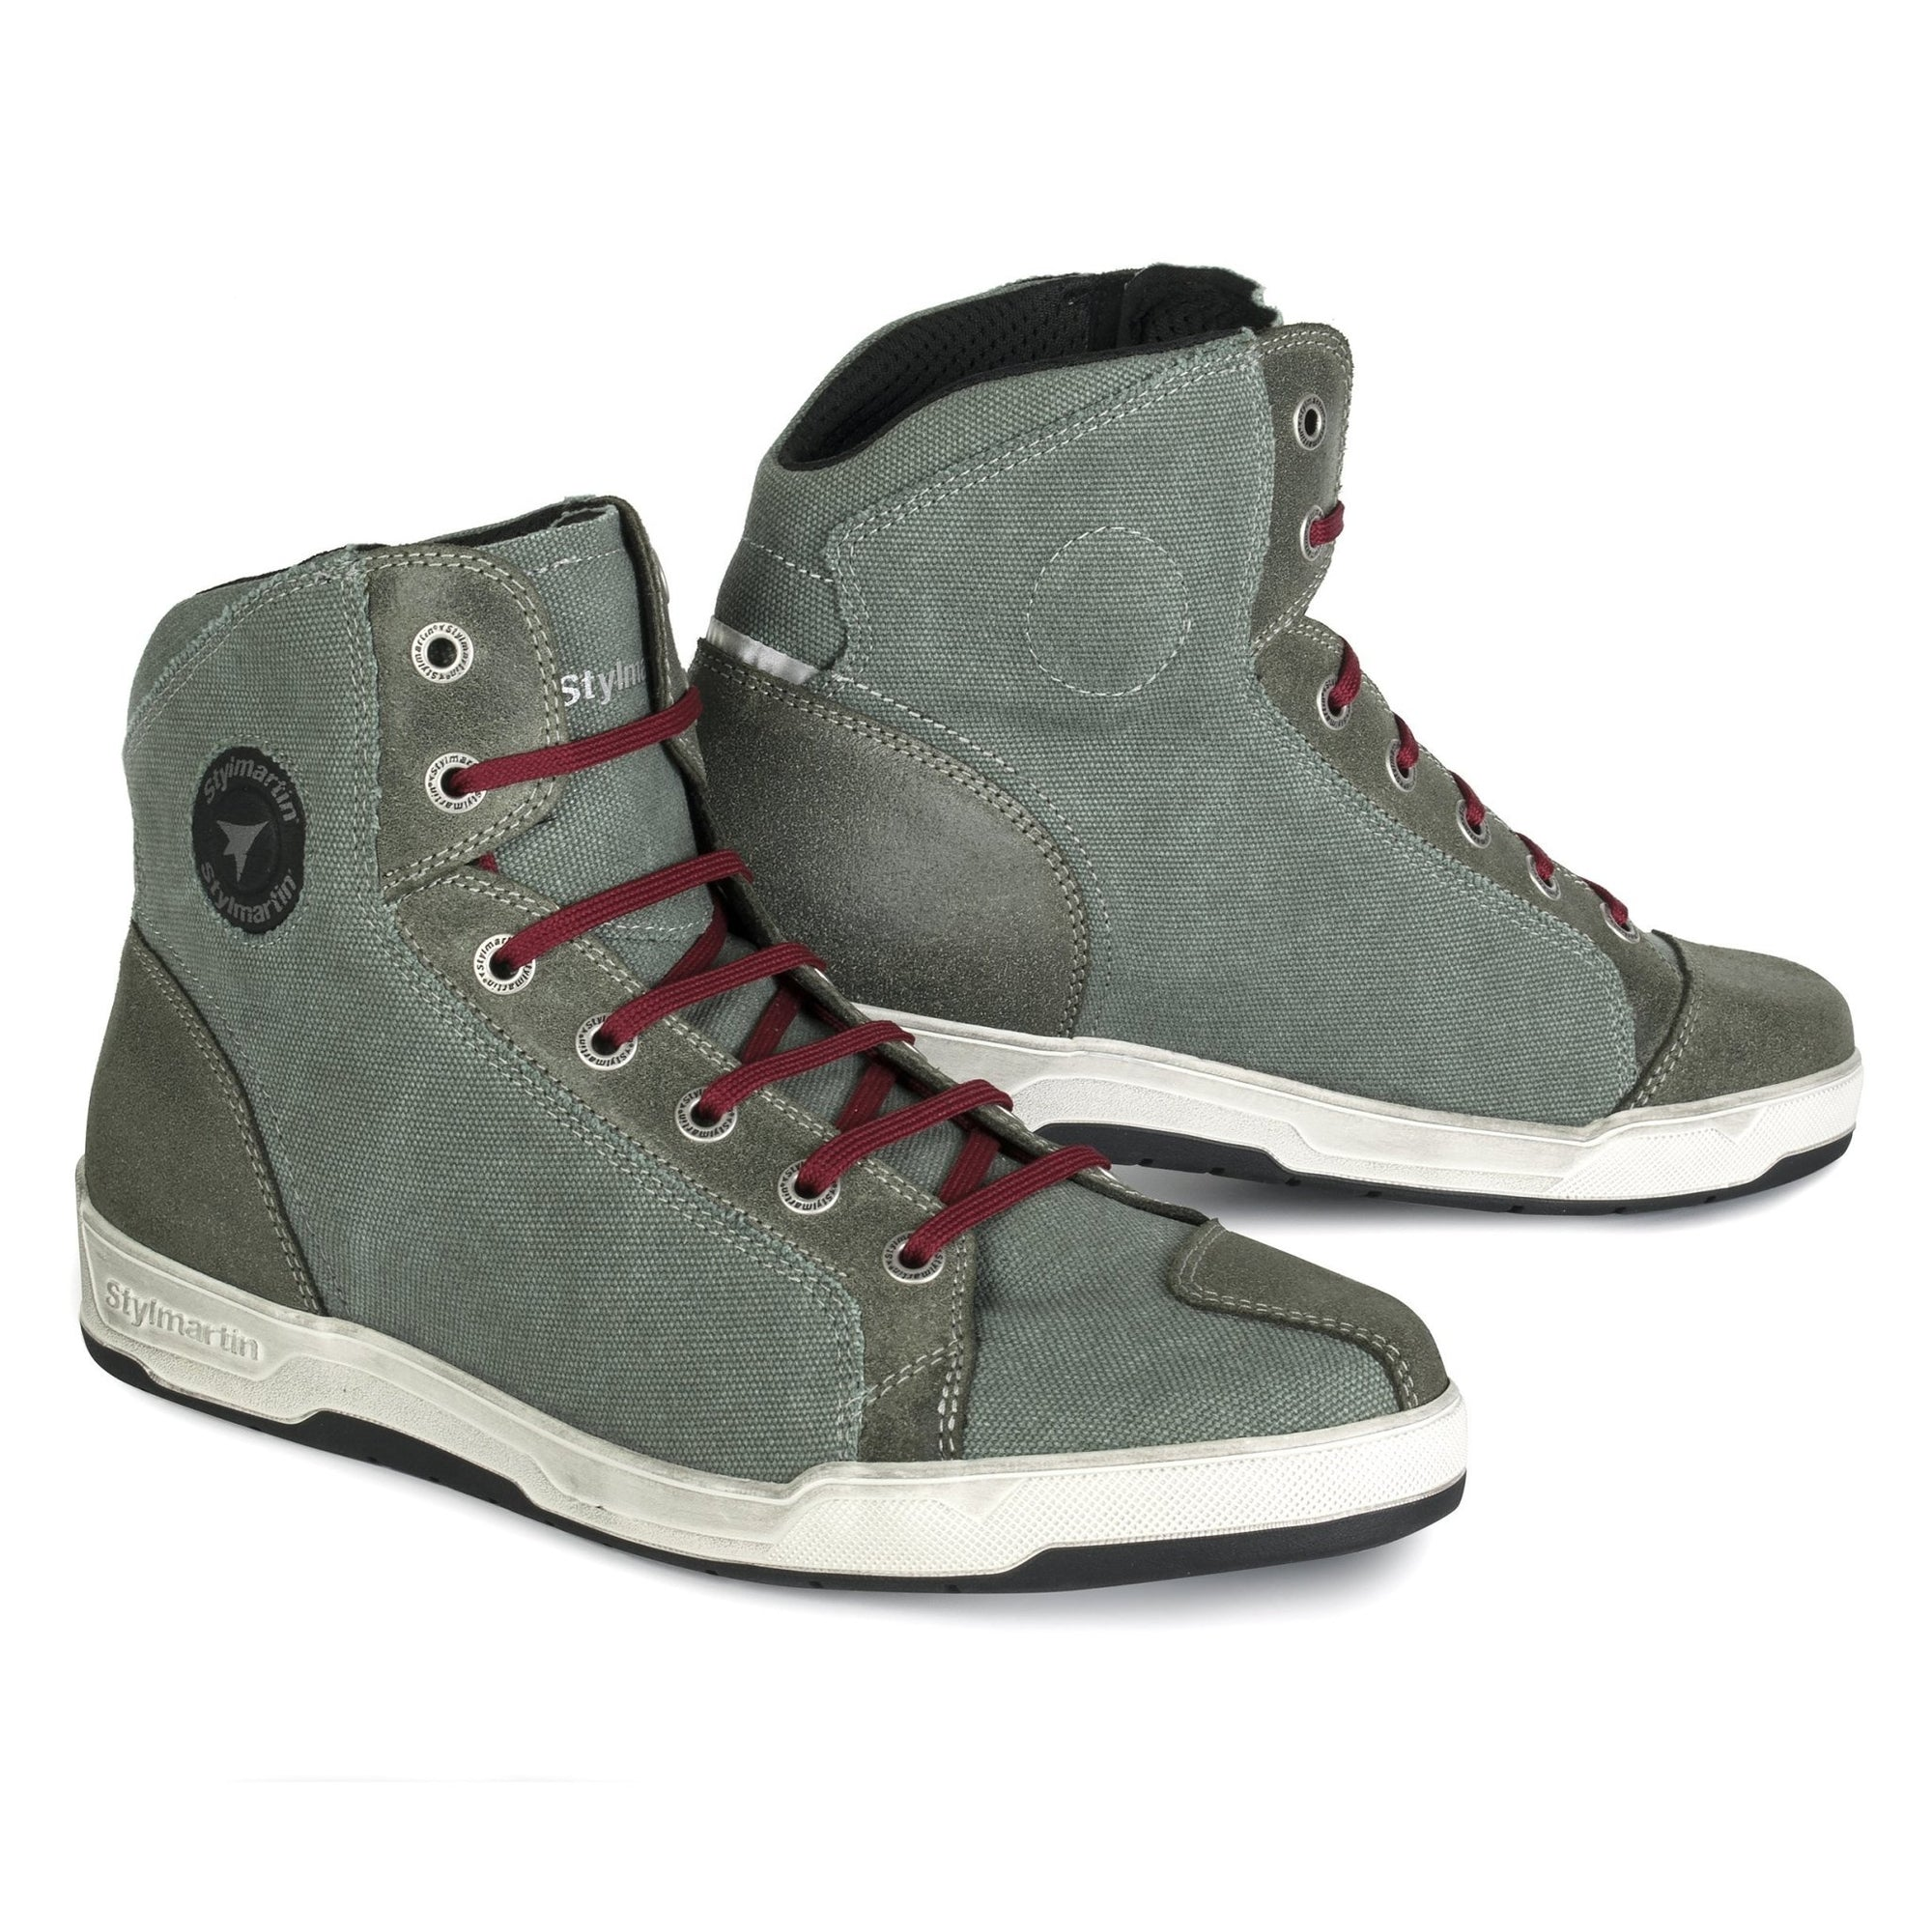 Stylmartin - Stylmartin Arizona Sneaker in Green - Boots - Salt Flats Clothing